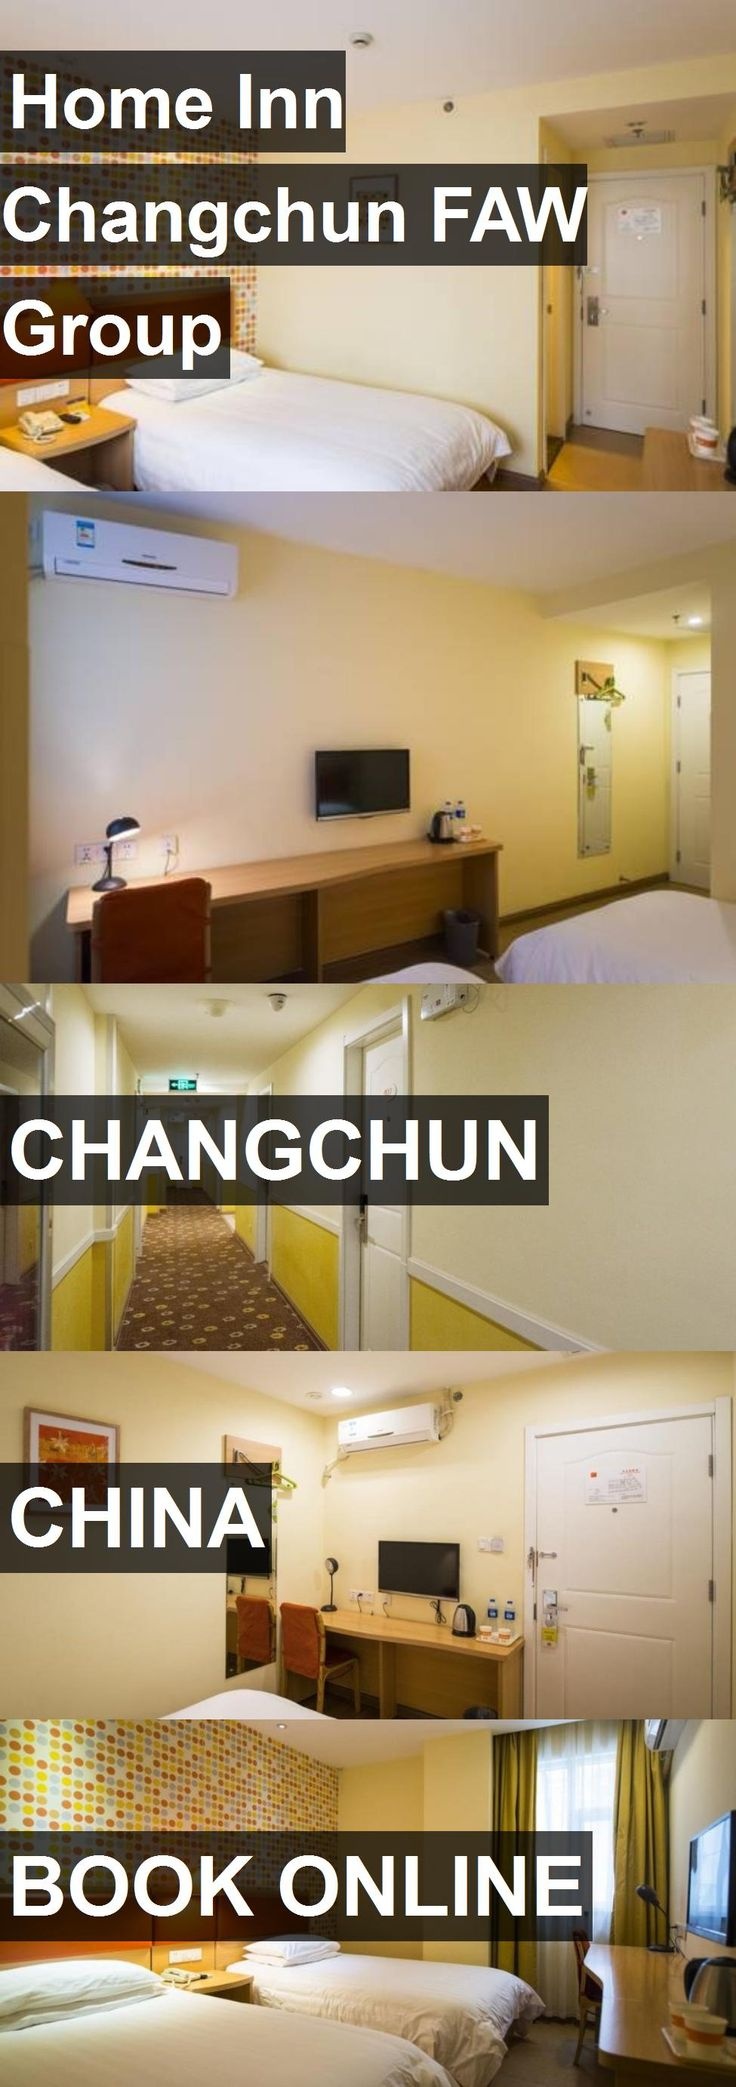 Hotel Home Inn Changchun FAW Group in Changchun, China. For more information, photos, reviews and best prices please follow the link. #China #Changchun #travel #vacation #hotel